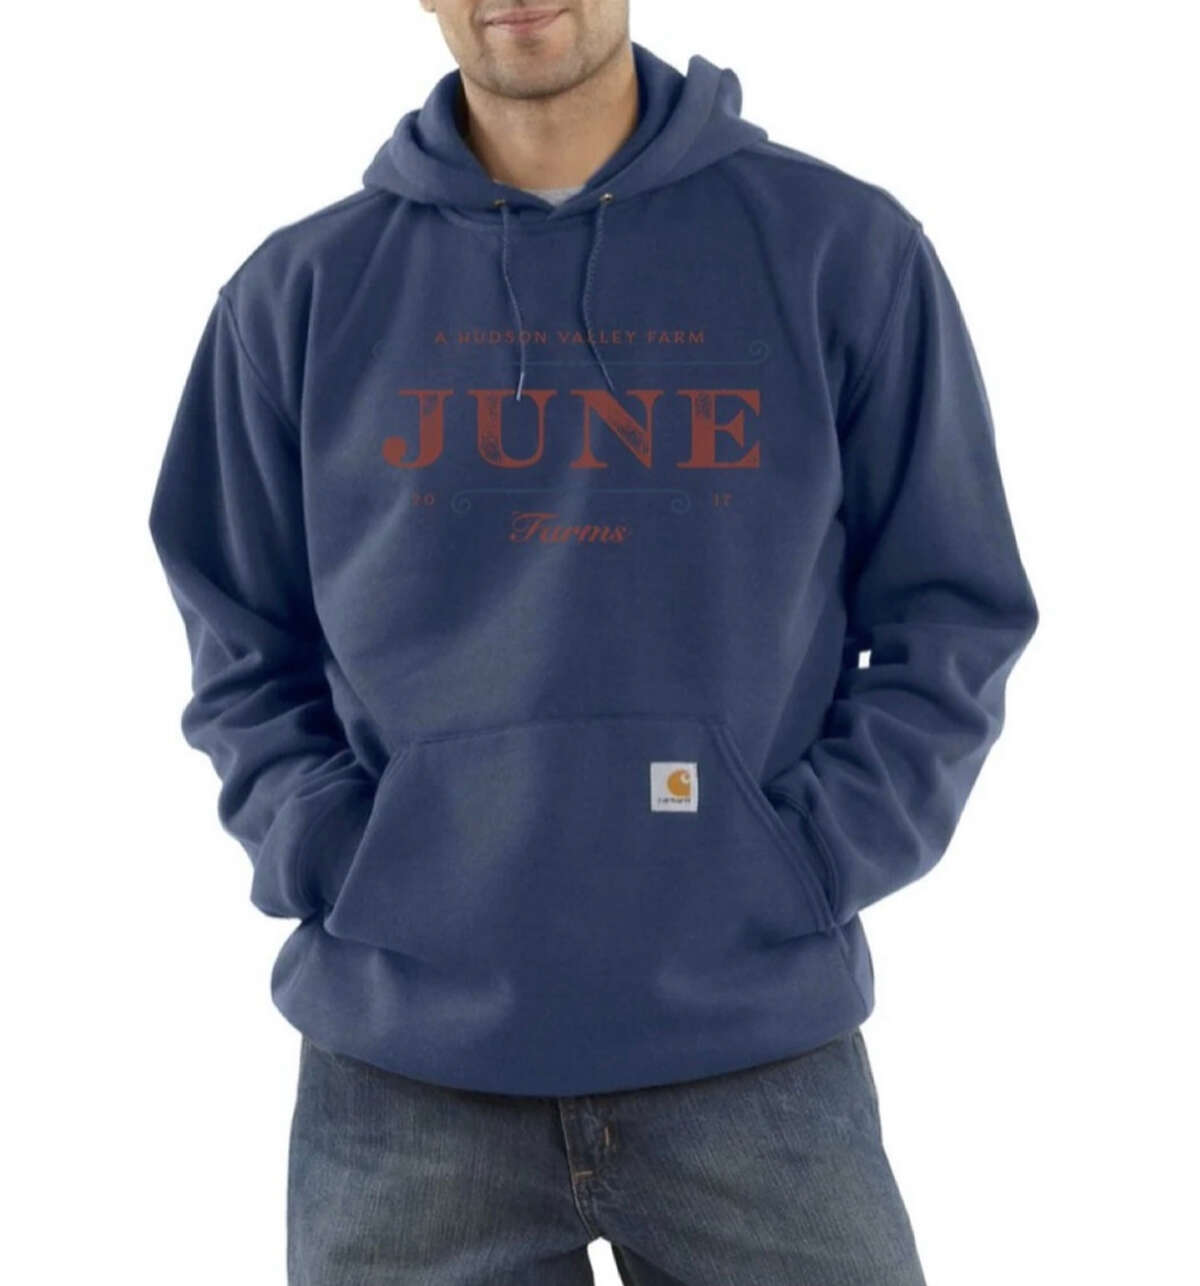 June Farms hoodie. (Provided photo.)